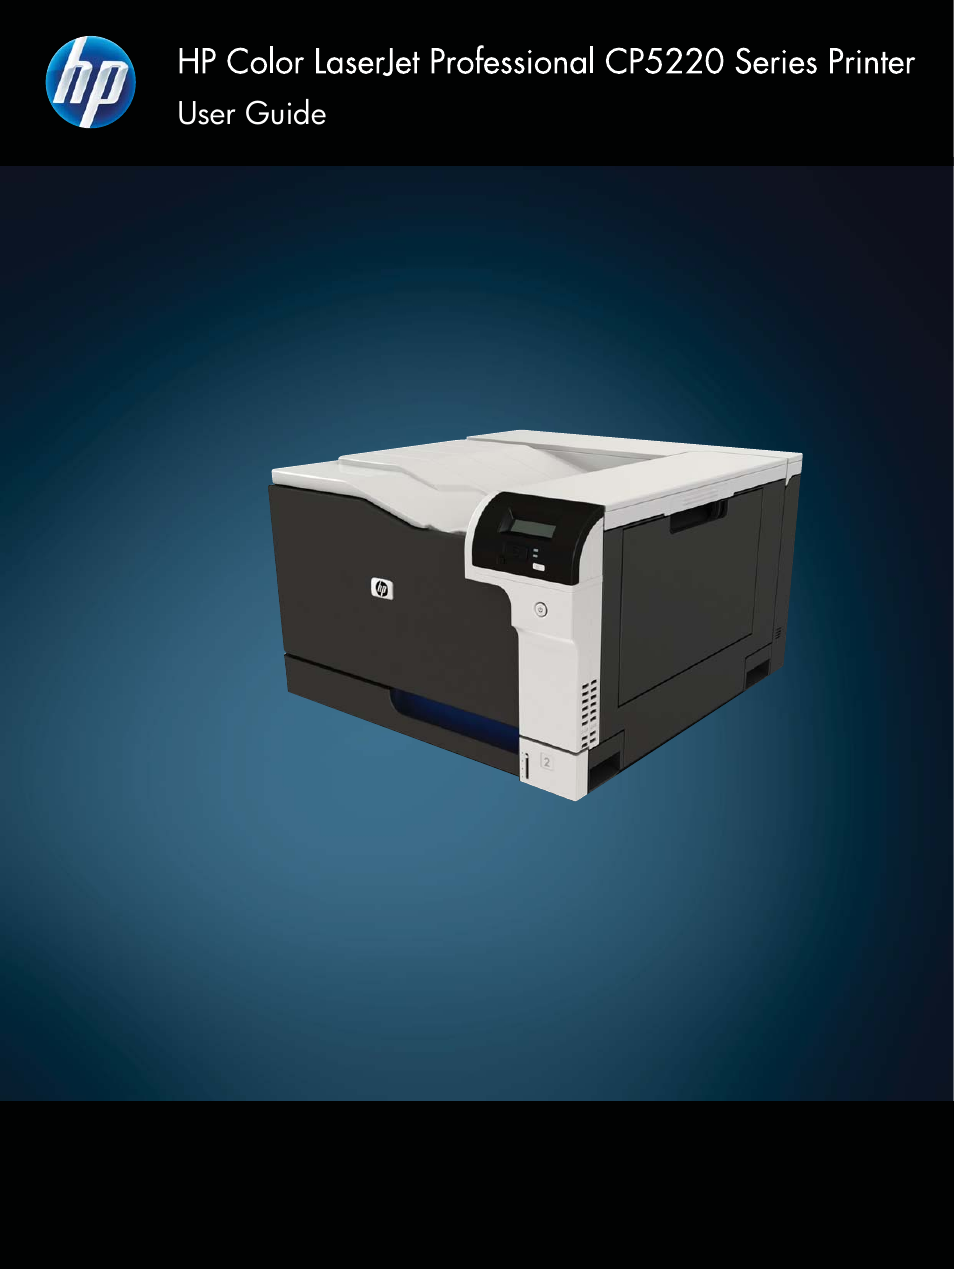 HP Color LaserJet Professional CP5225 Printer series User Manual | 168 pages